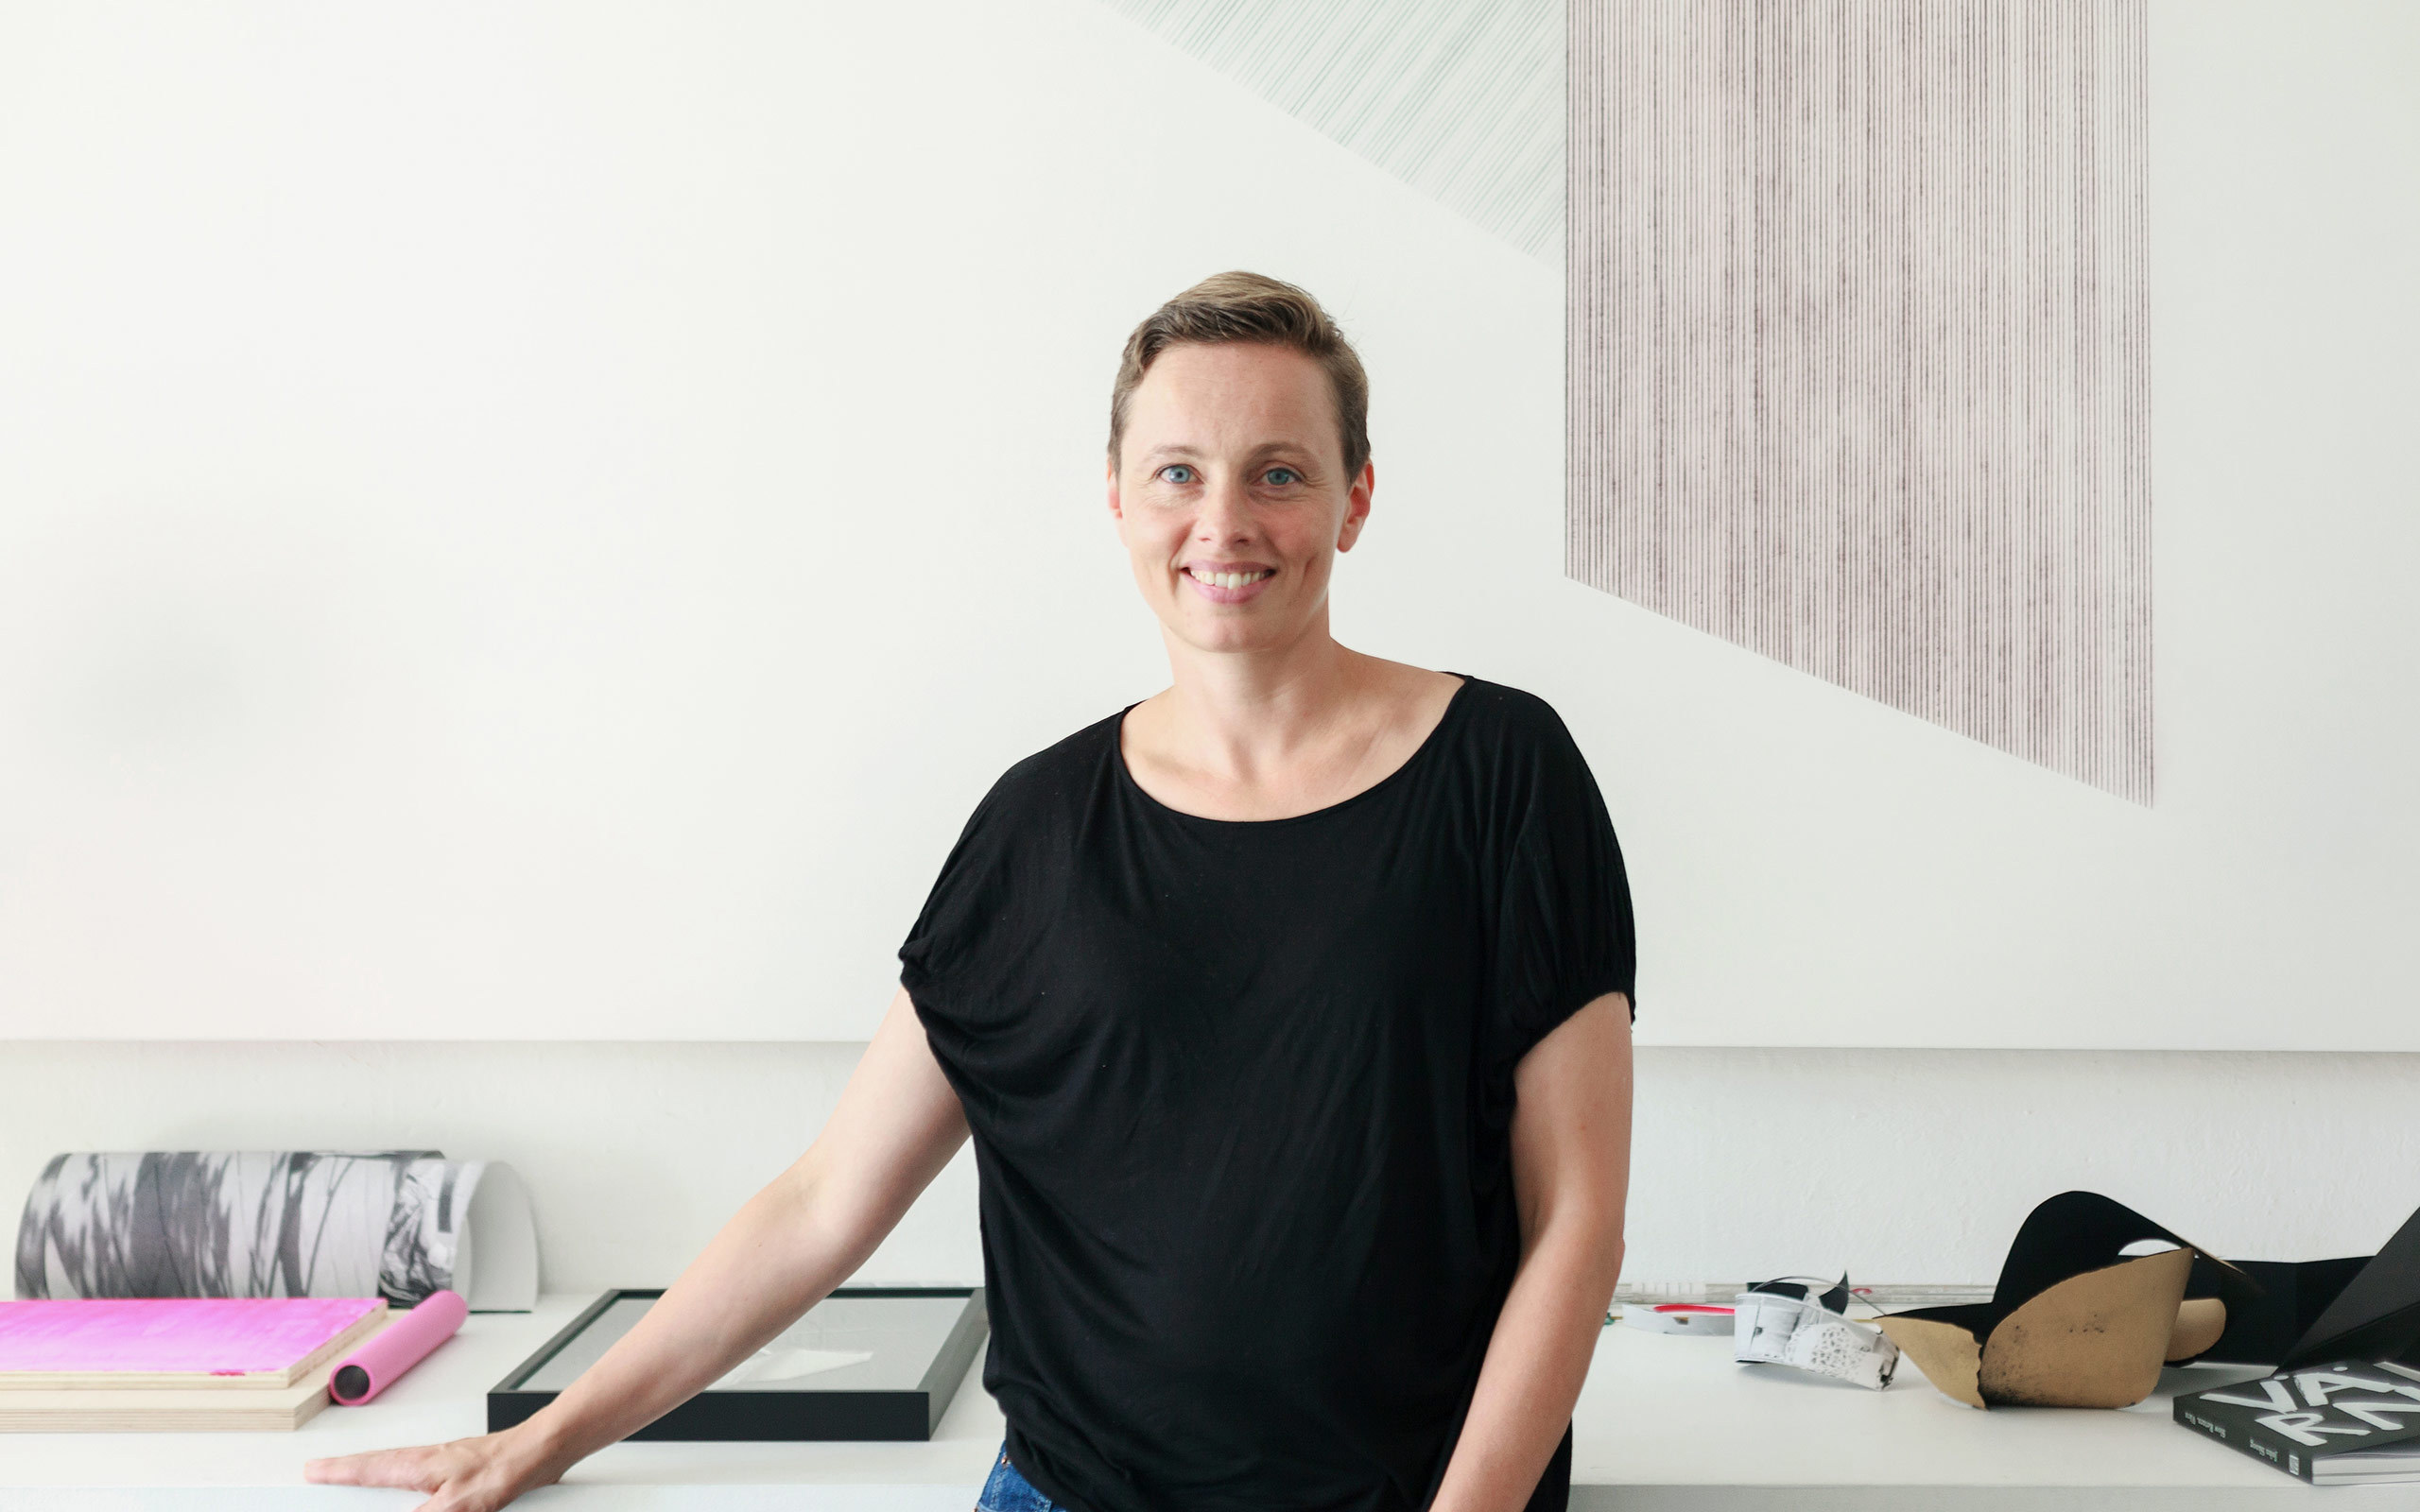 04 Sofie Thorsen, Danish artist, lives and works in Vienna